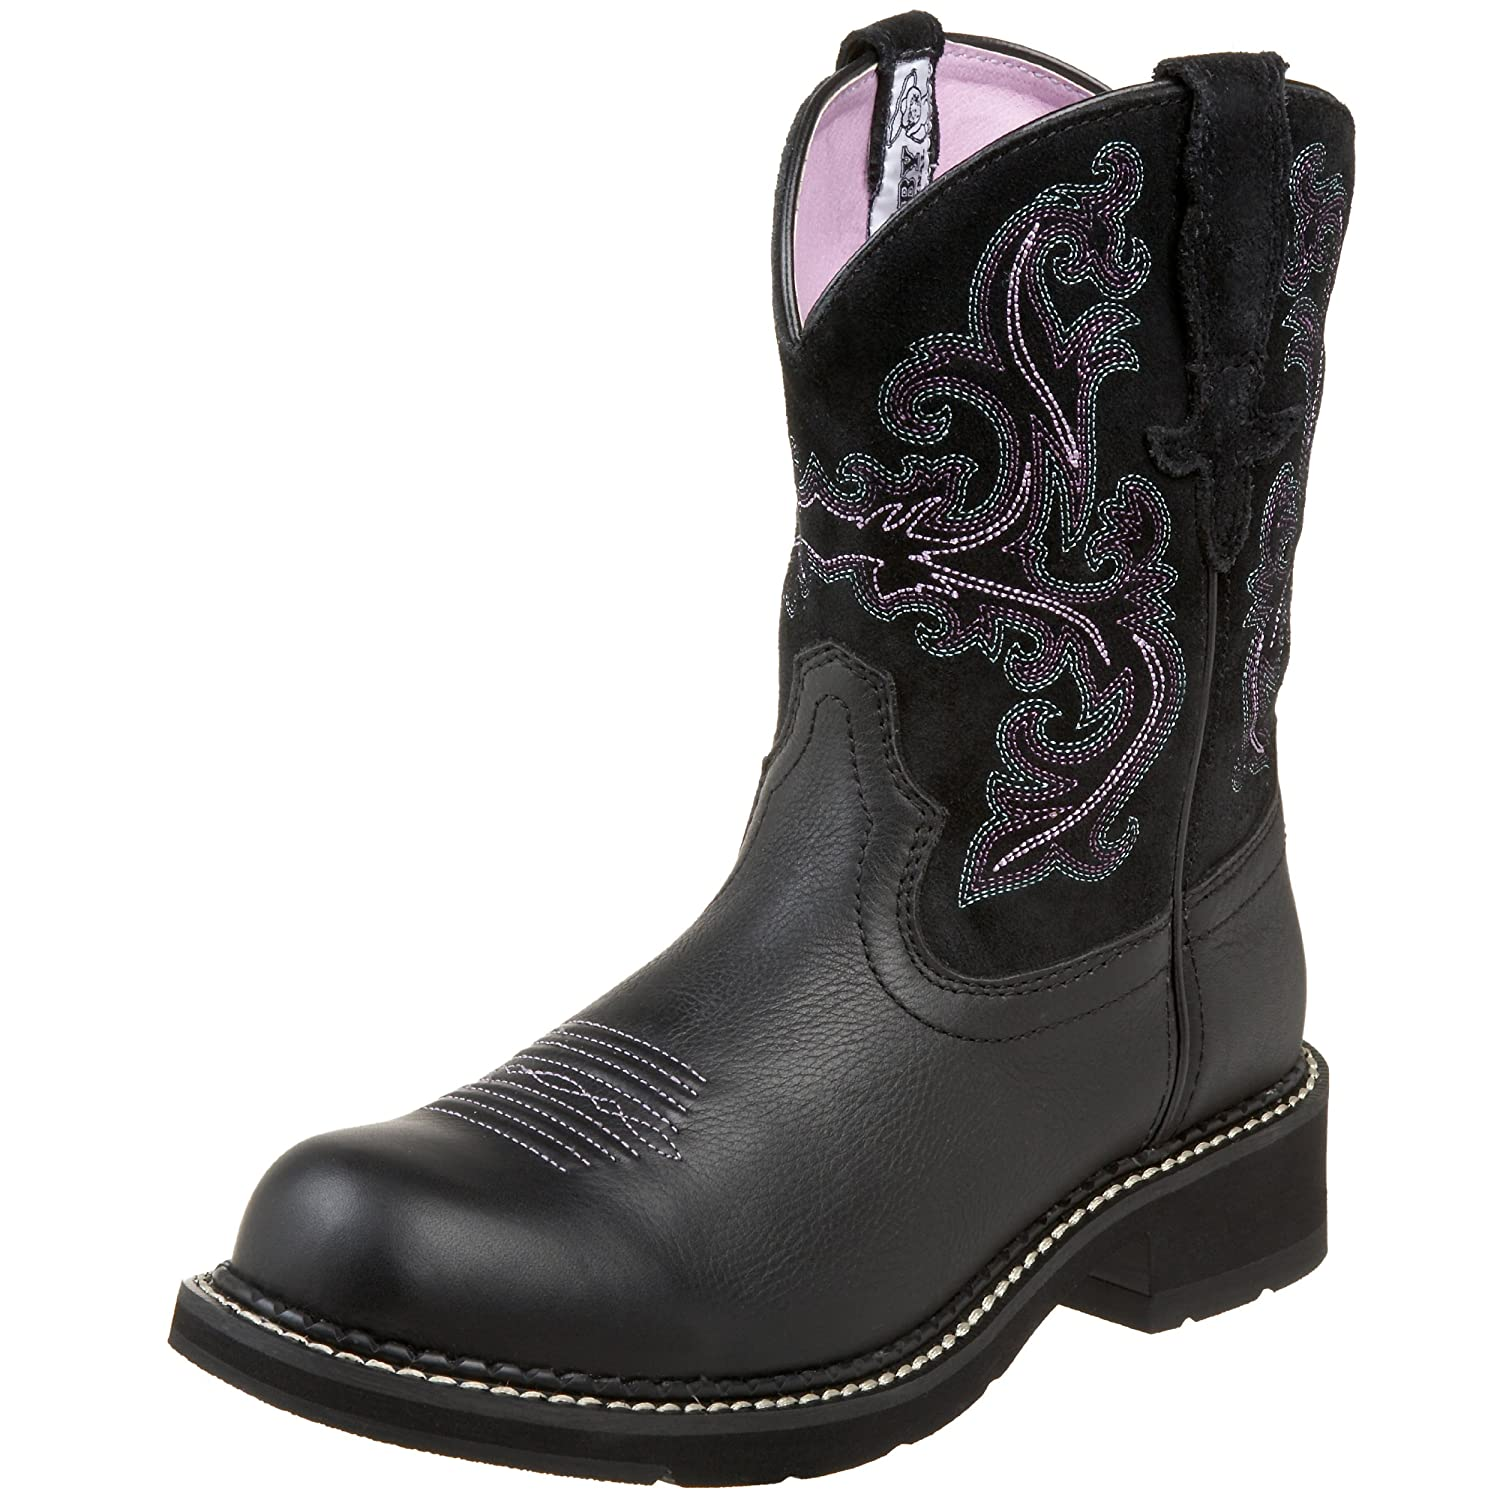 Ariat at Amazon.com | Boots, Clothing, & Accessories